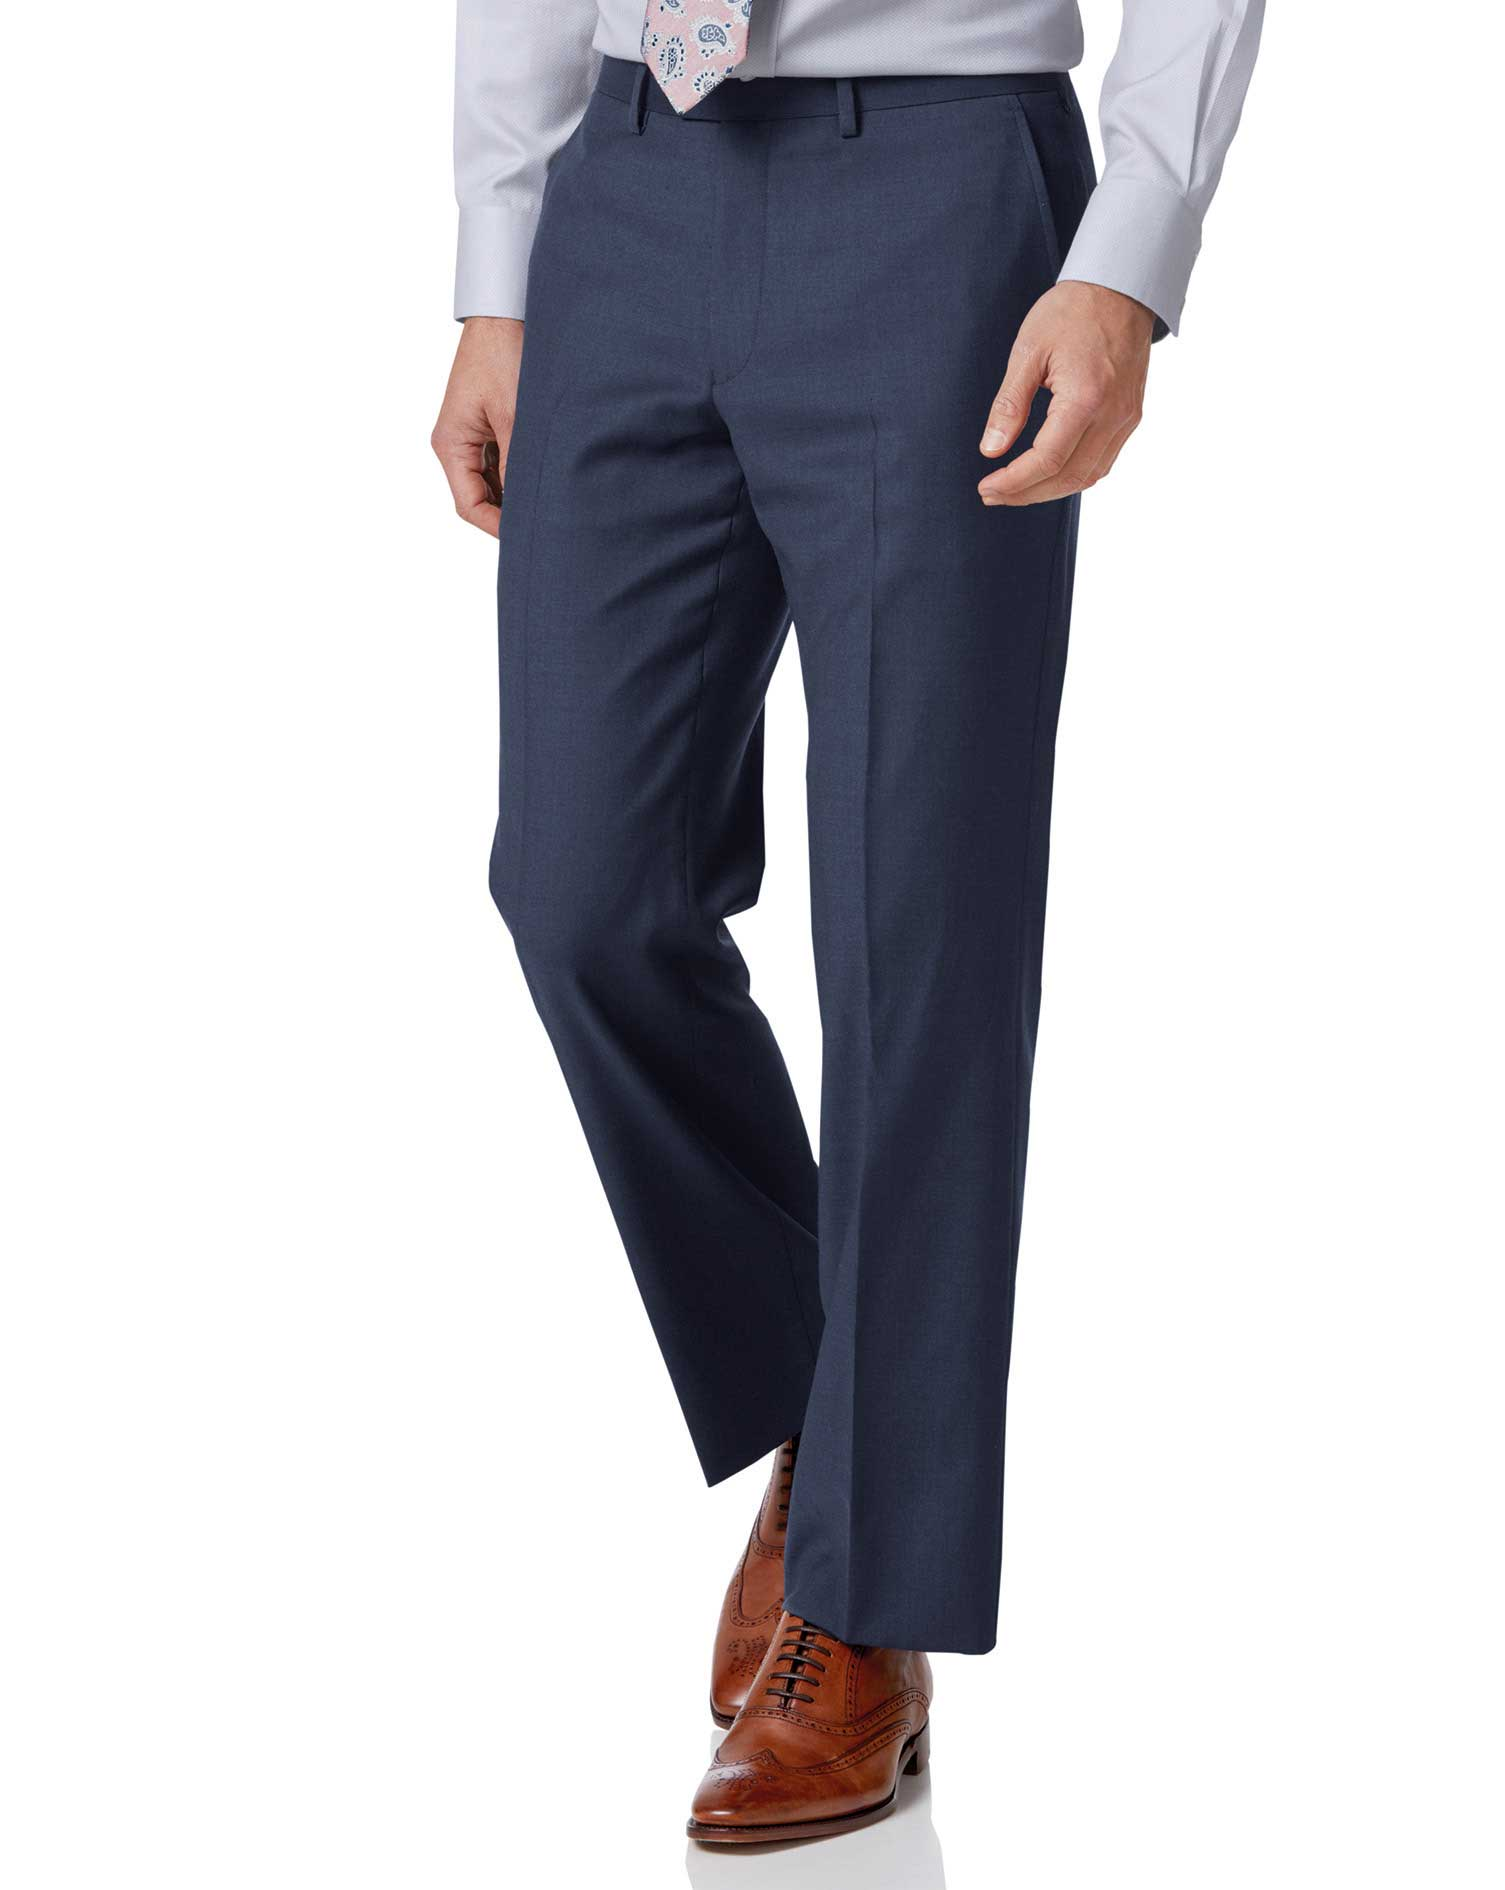 Mid Blue Classic Fit Twill Business Suit Trousers Size W40 L32 by Charles Tyrwhitt